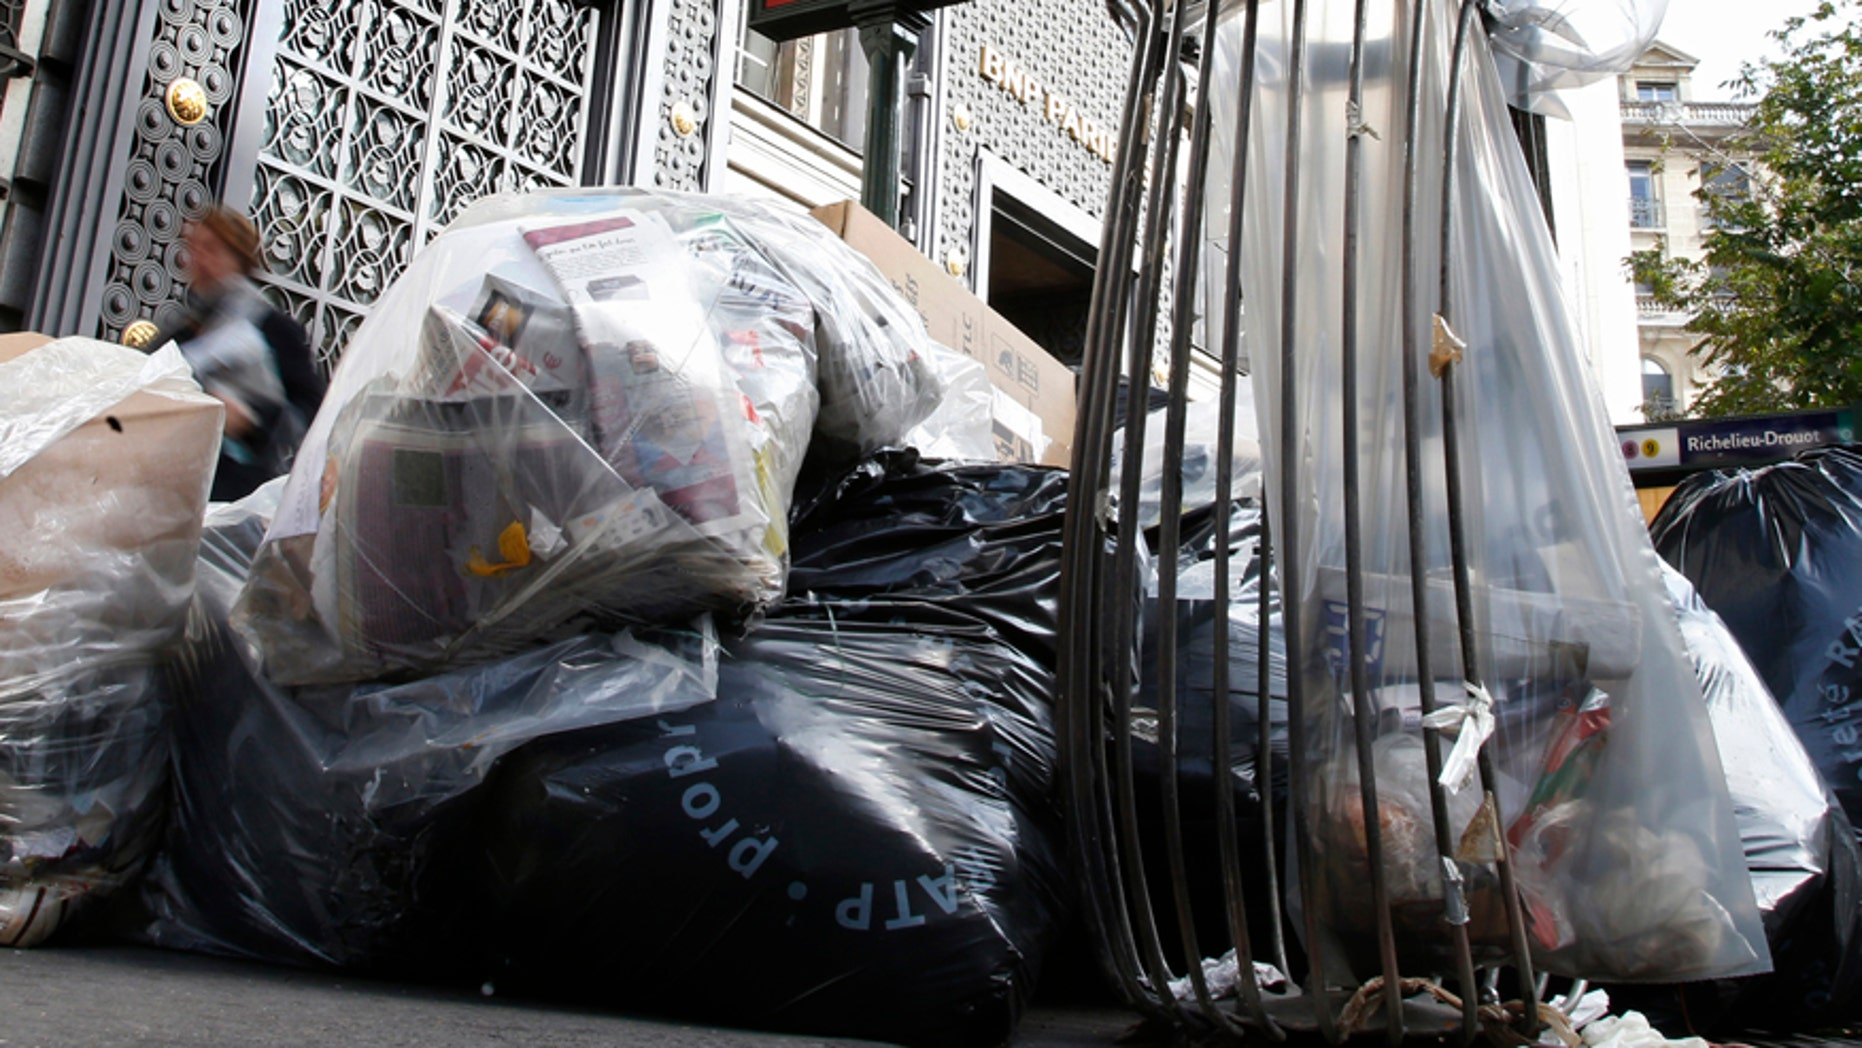 Bags of garbage are seen on a sidewalk near a Metro underground entrance during a strike by rubbish collectors in Paris, France, October 7, 2015. Garbage bins accumulate along sidewalks as half of the districts in the French capital are affected by the strike which started on Monday.    REUTERS/Jacky Naegelen - RTS3E97